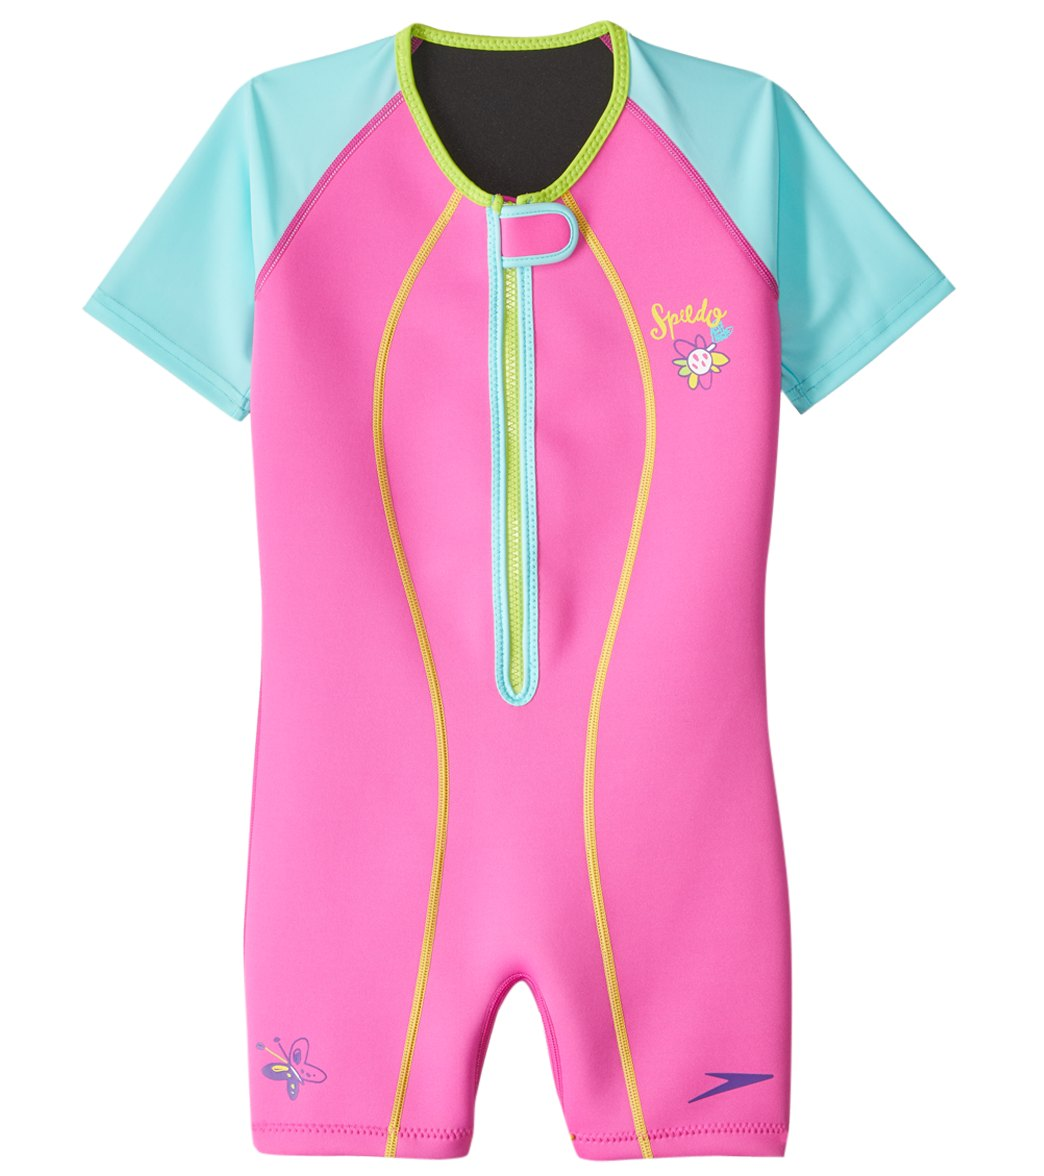 54da952dff Speedo Girls' UPF 50+ Thermal Suit (2T-10) at SwimOutlet.com